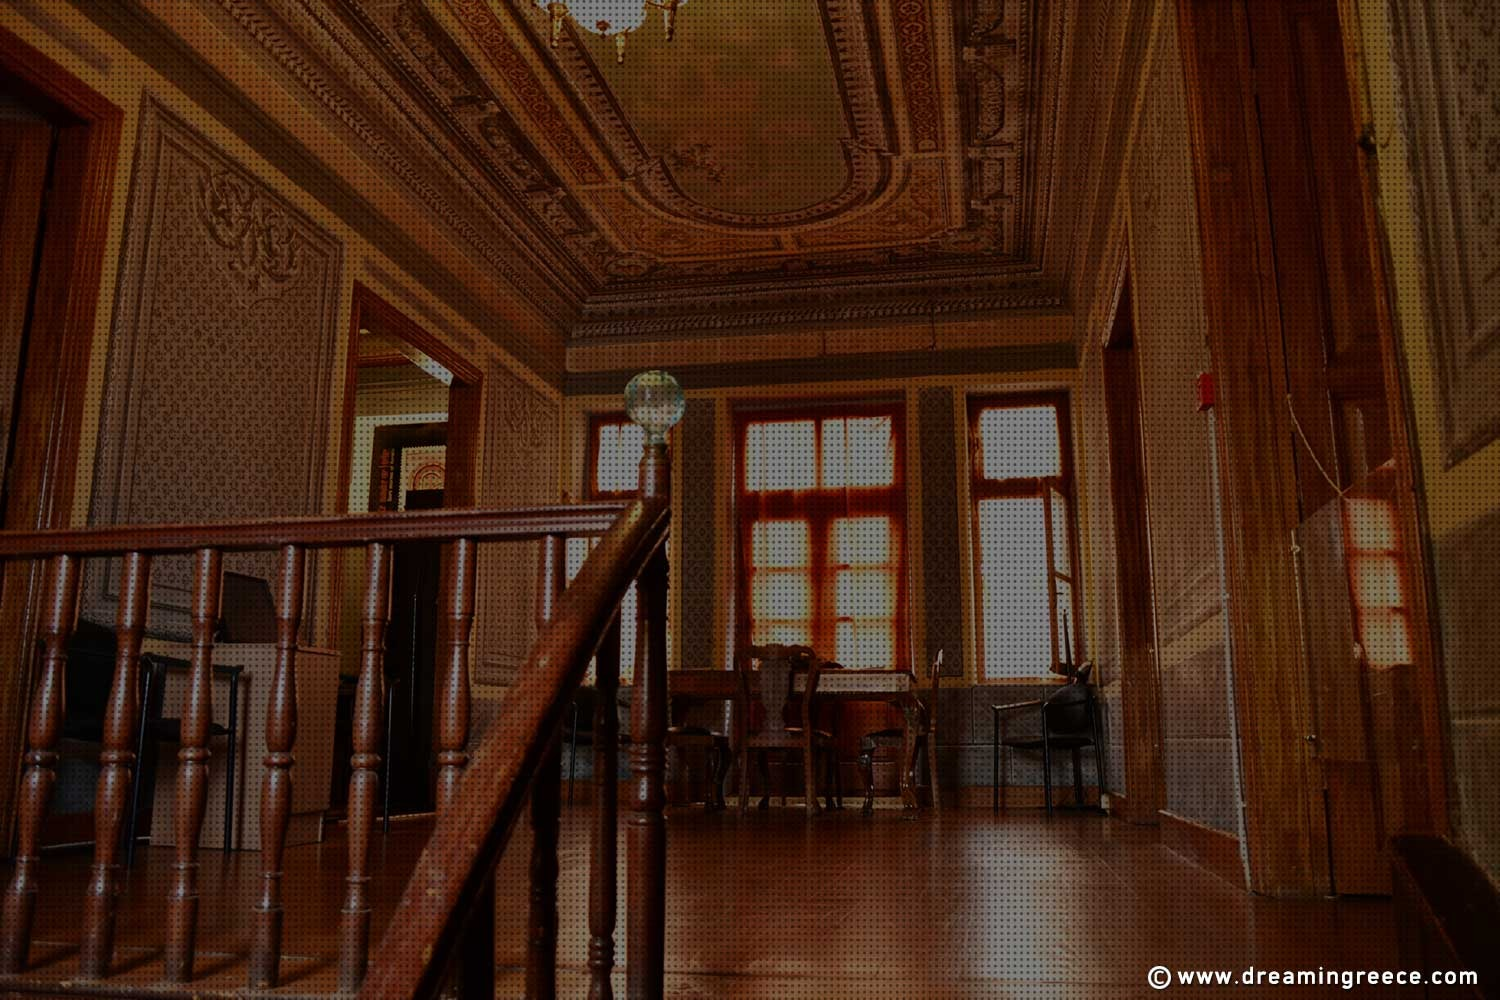 Folklore Museum of Xanthi. Museums in Greece.